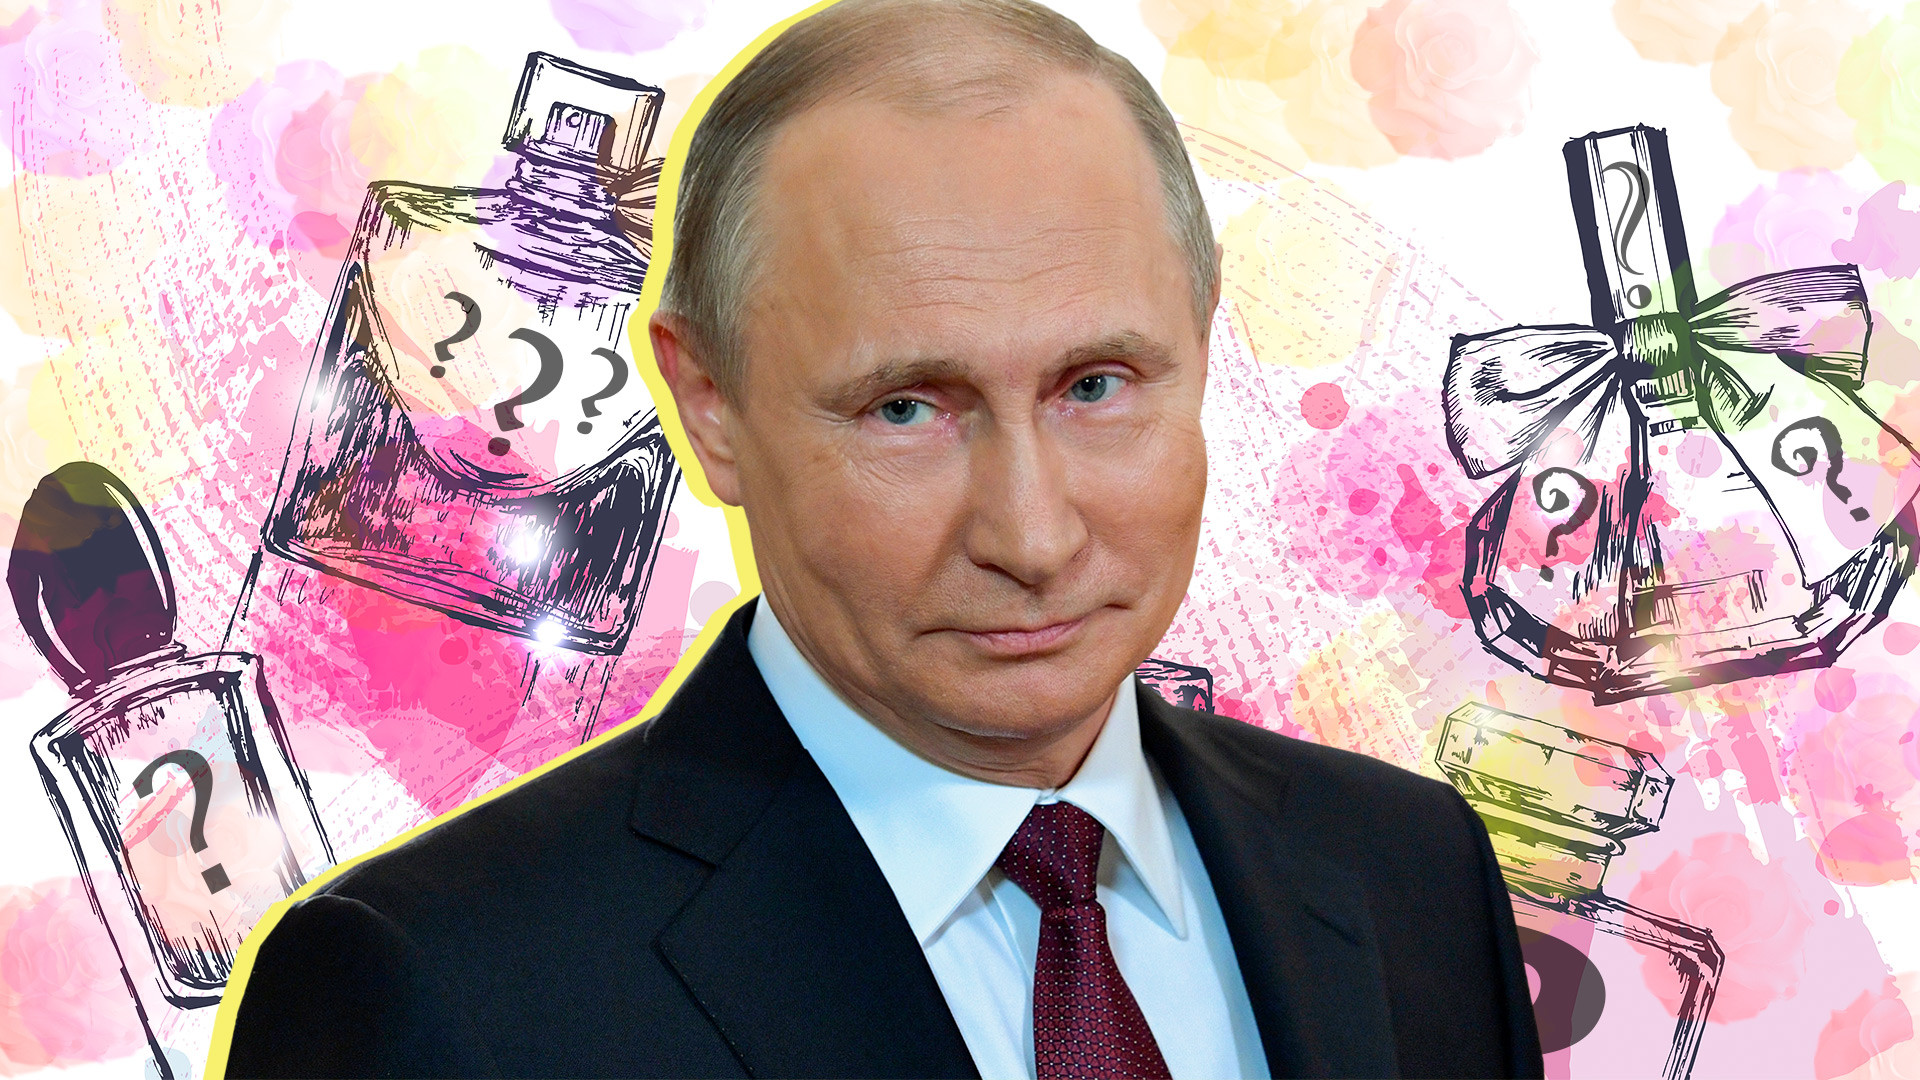 What does Putin smell like? | Russia Beyond